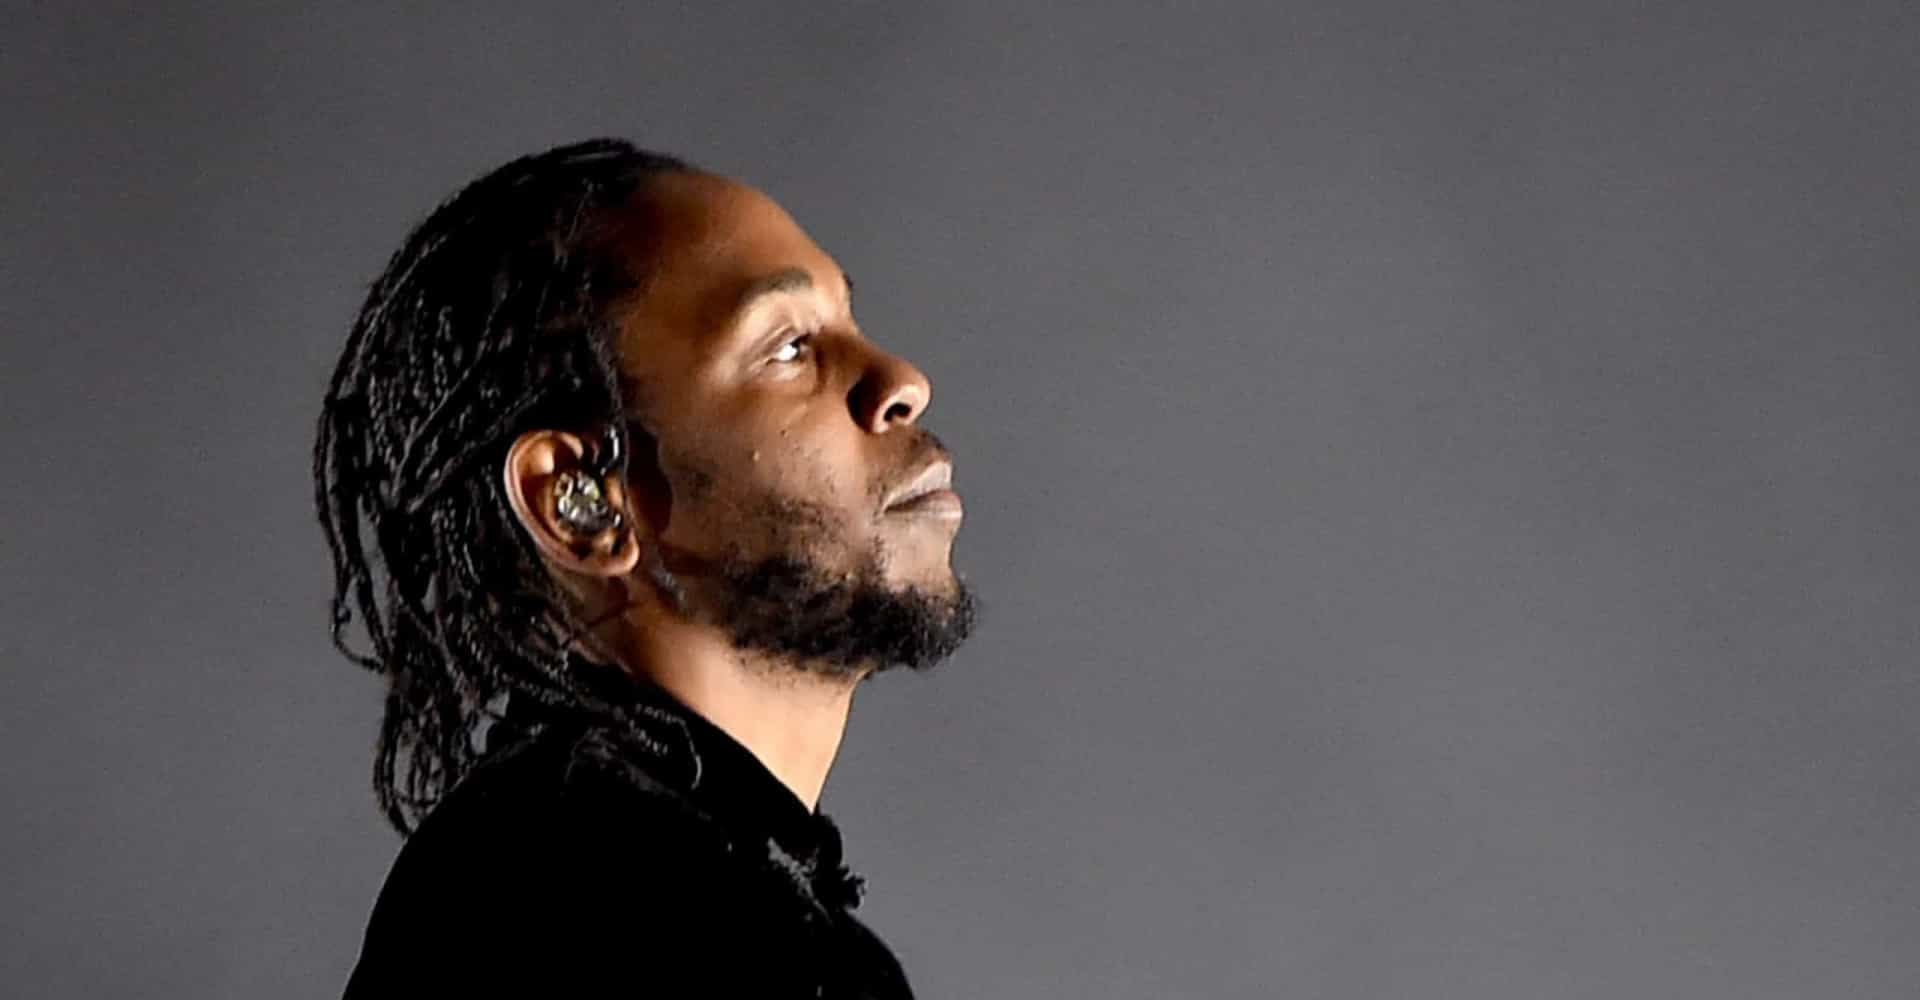 Is Kendrick Lamar the greatest rapper alive?